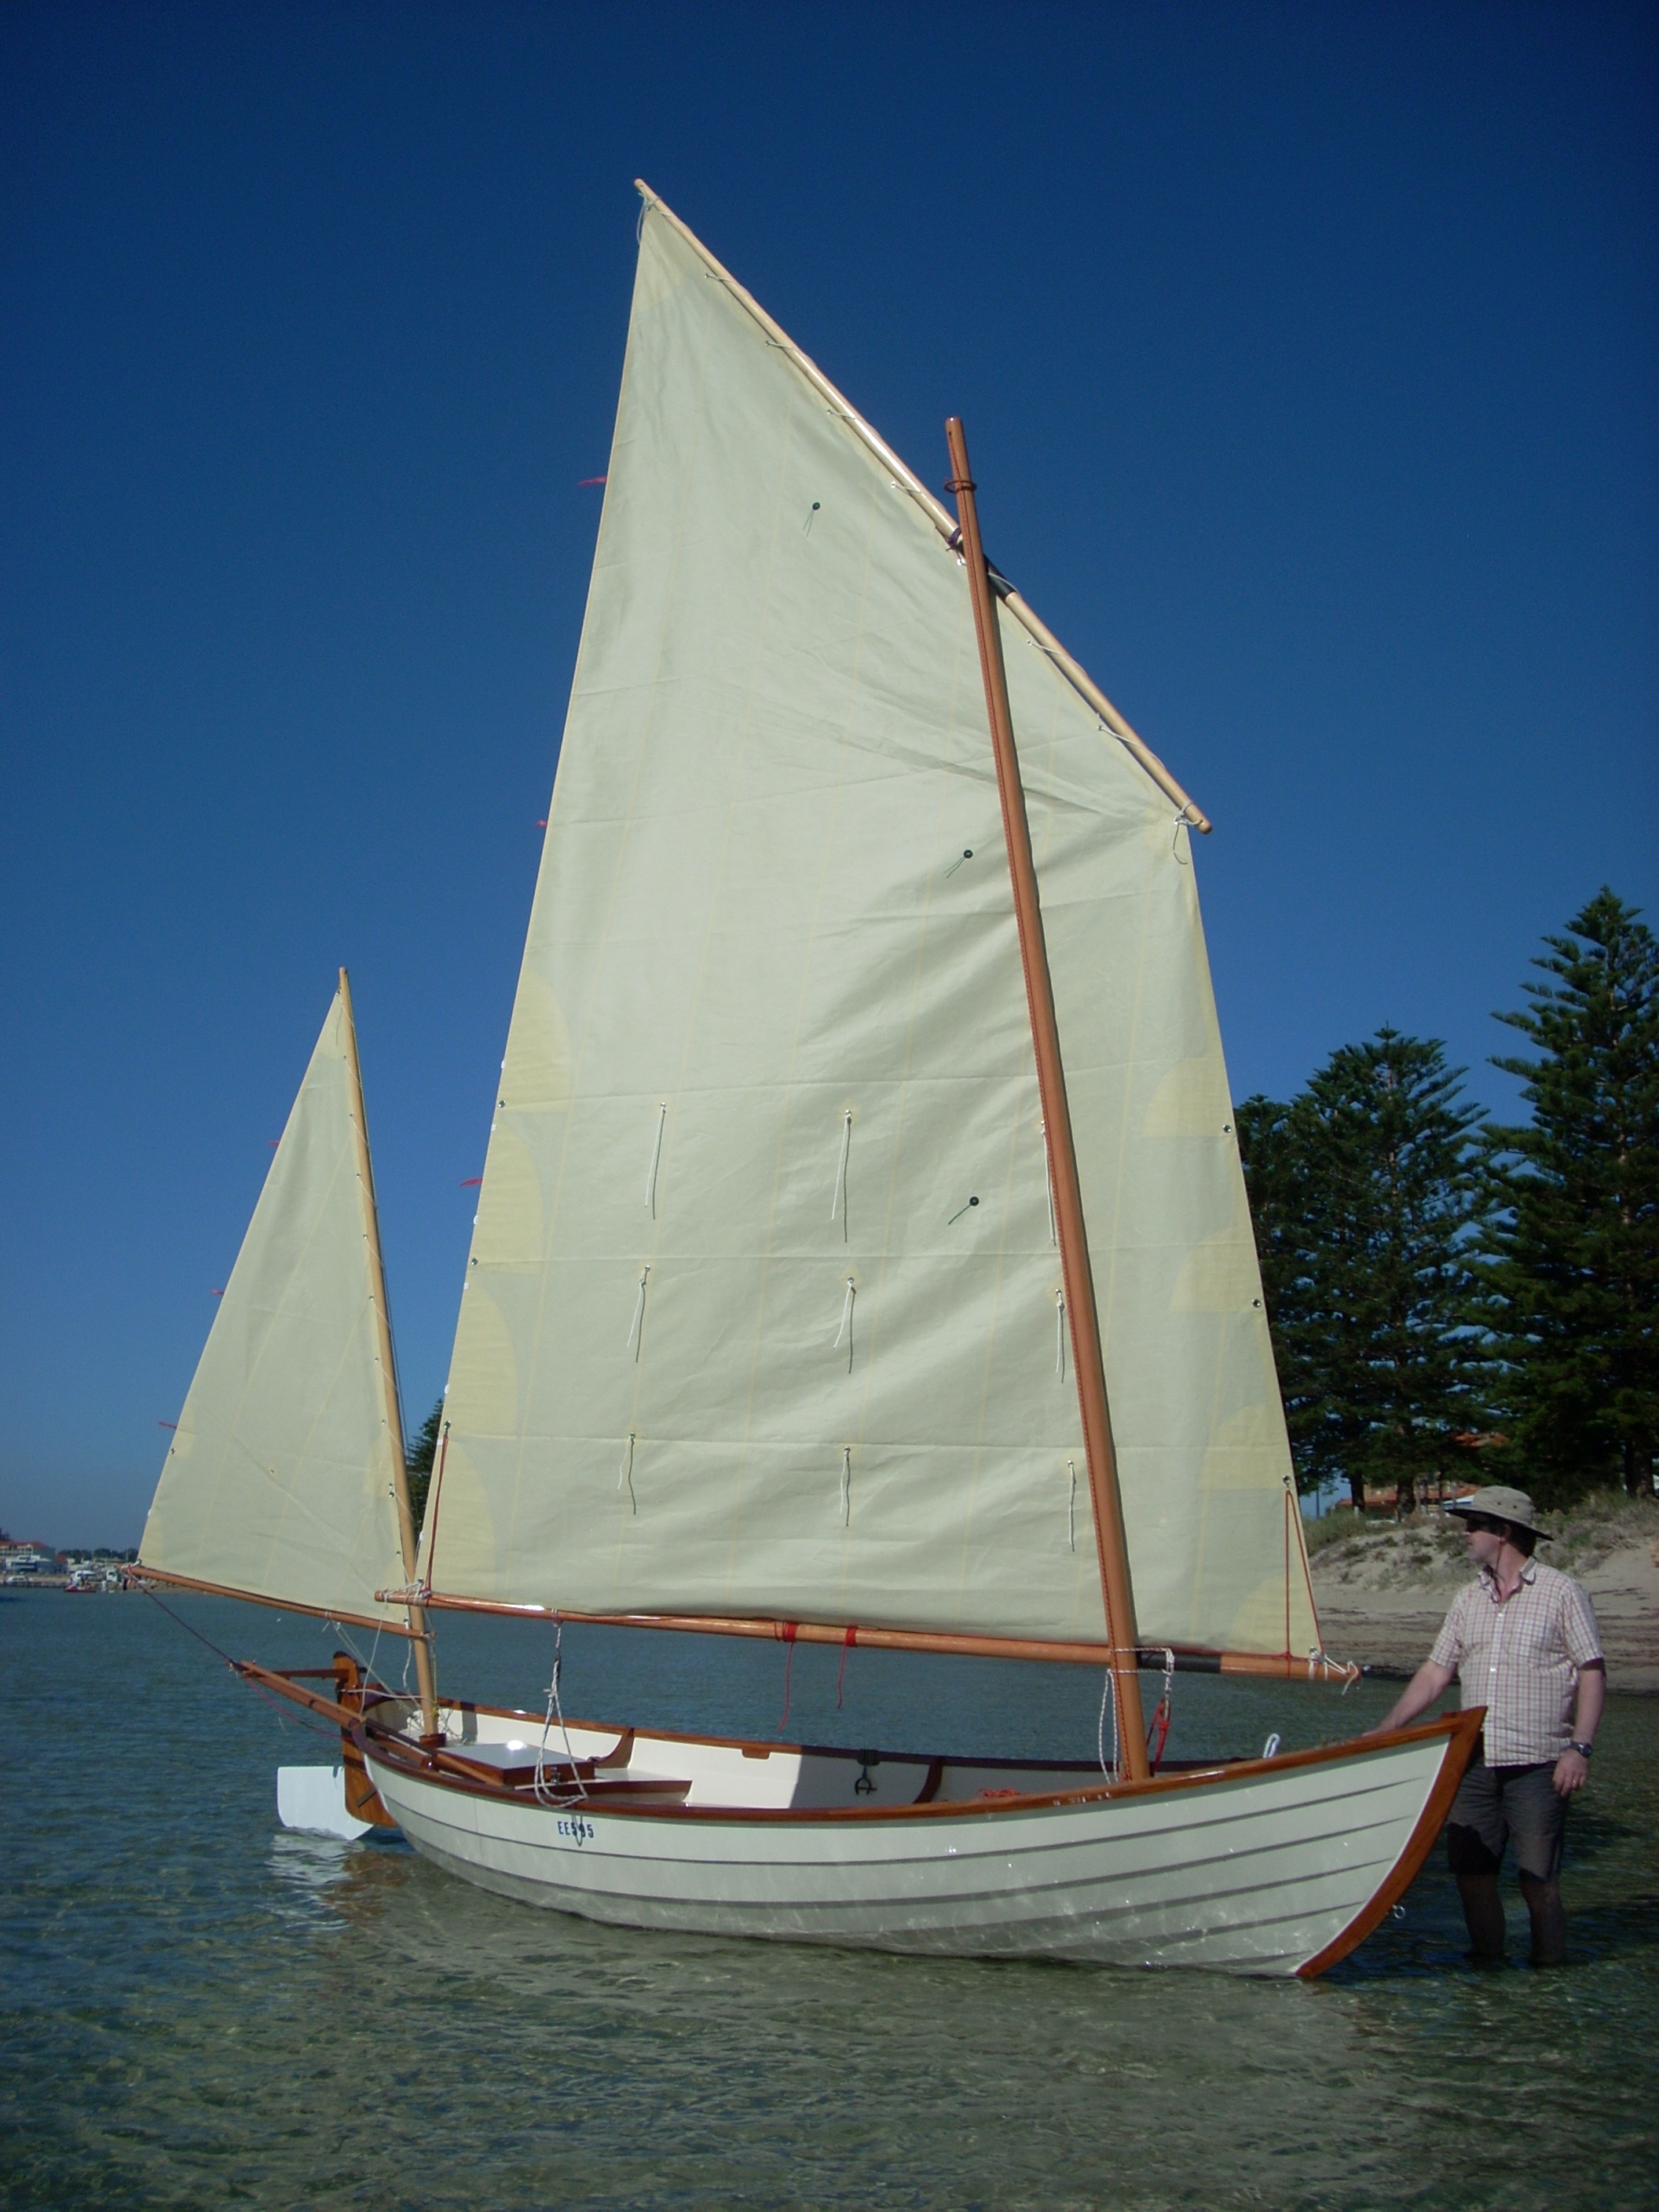 O'Connor Wooden Boats. Unit 4, 12 Day rd. East Rockingham. 6168 Western Australia. Phone 08 95921826.  Mobile 0423 284502  Wooden boat kits in Australia  Restoration and repair of wooden boats in Western Australia